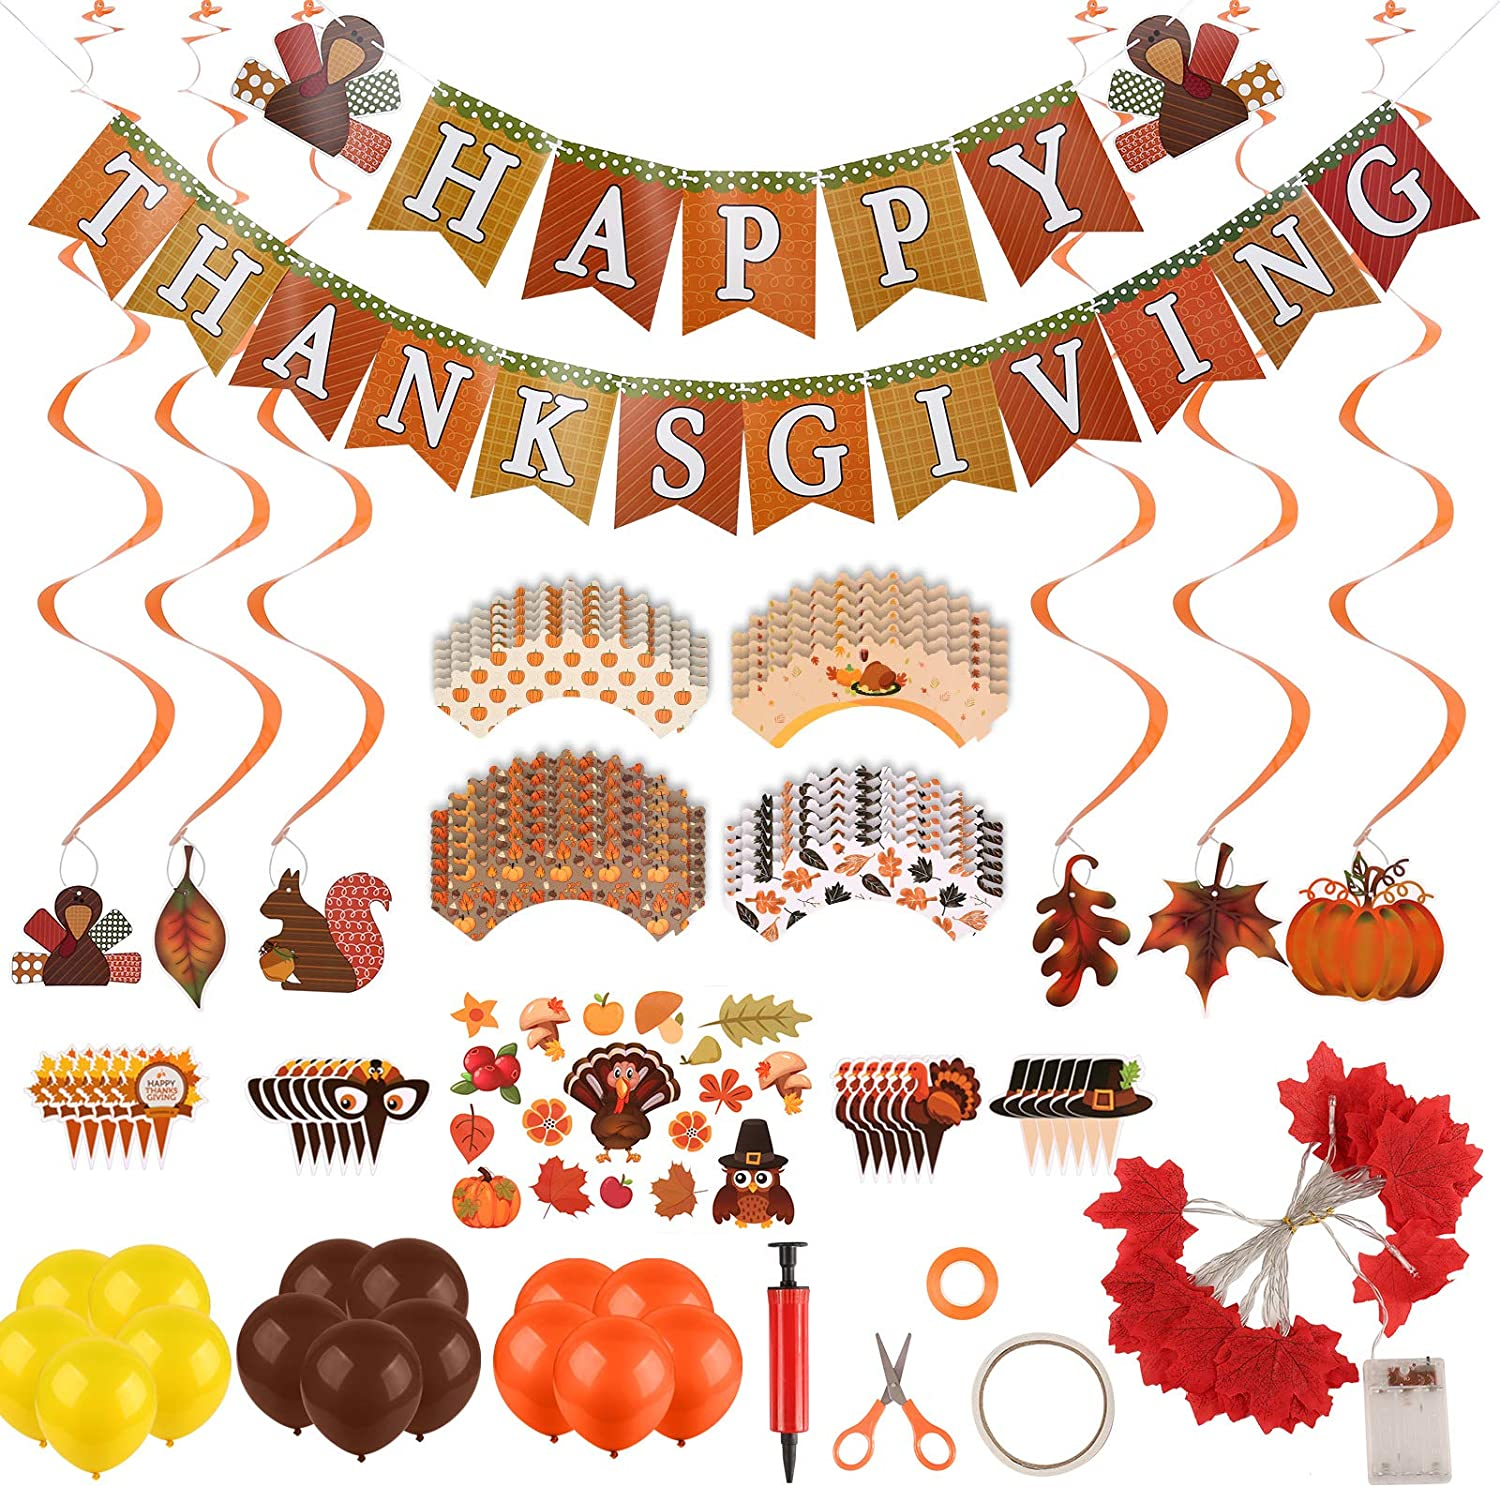 Fukep 2020 Thanksgiving Decorations Set for Home 76 Pieces Fall Festival Party Supplies Fall Decorations Thanksgiving Balloons 20 LED Maple Leaf Lights Banner Hanging Swirls Stickers Cupcake Wrappers